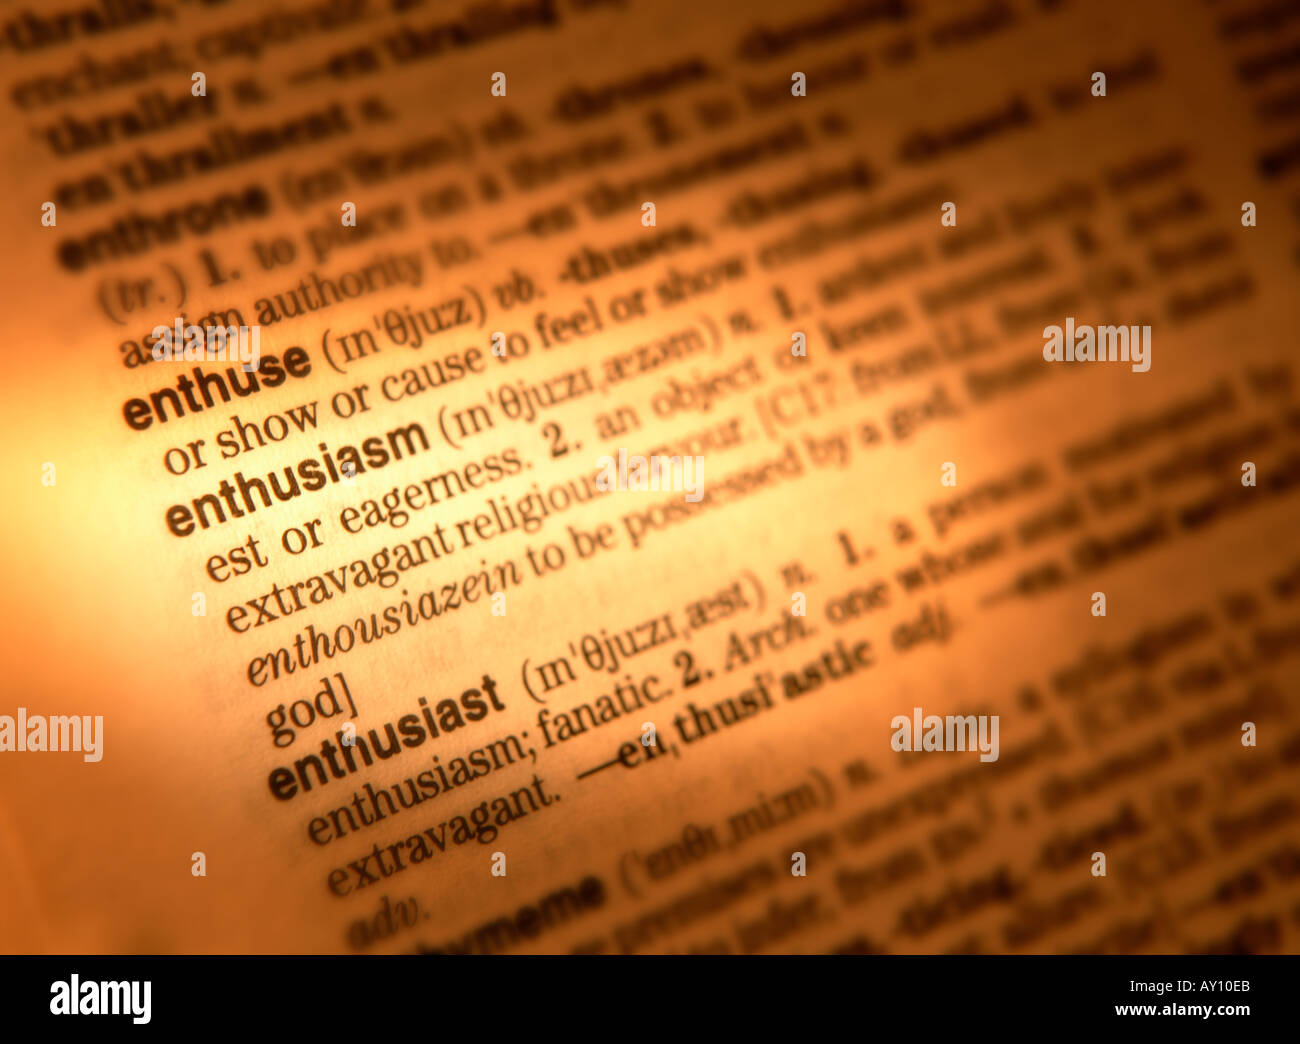 CLOSE UP OF DICTIONARY PAGE SHOWING DEFINITION OF THE WORD ENTHUSIASM